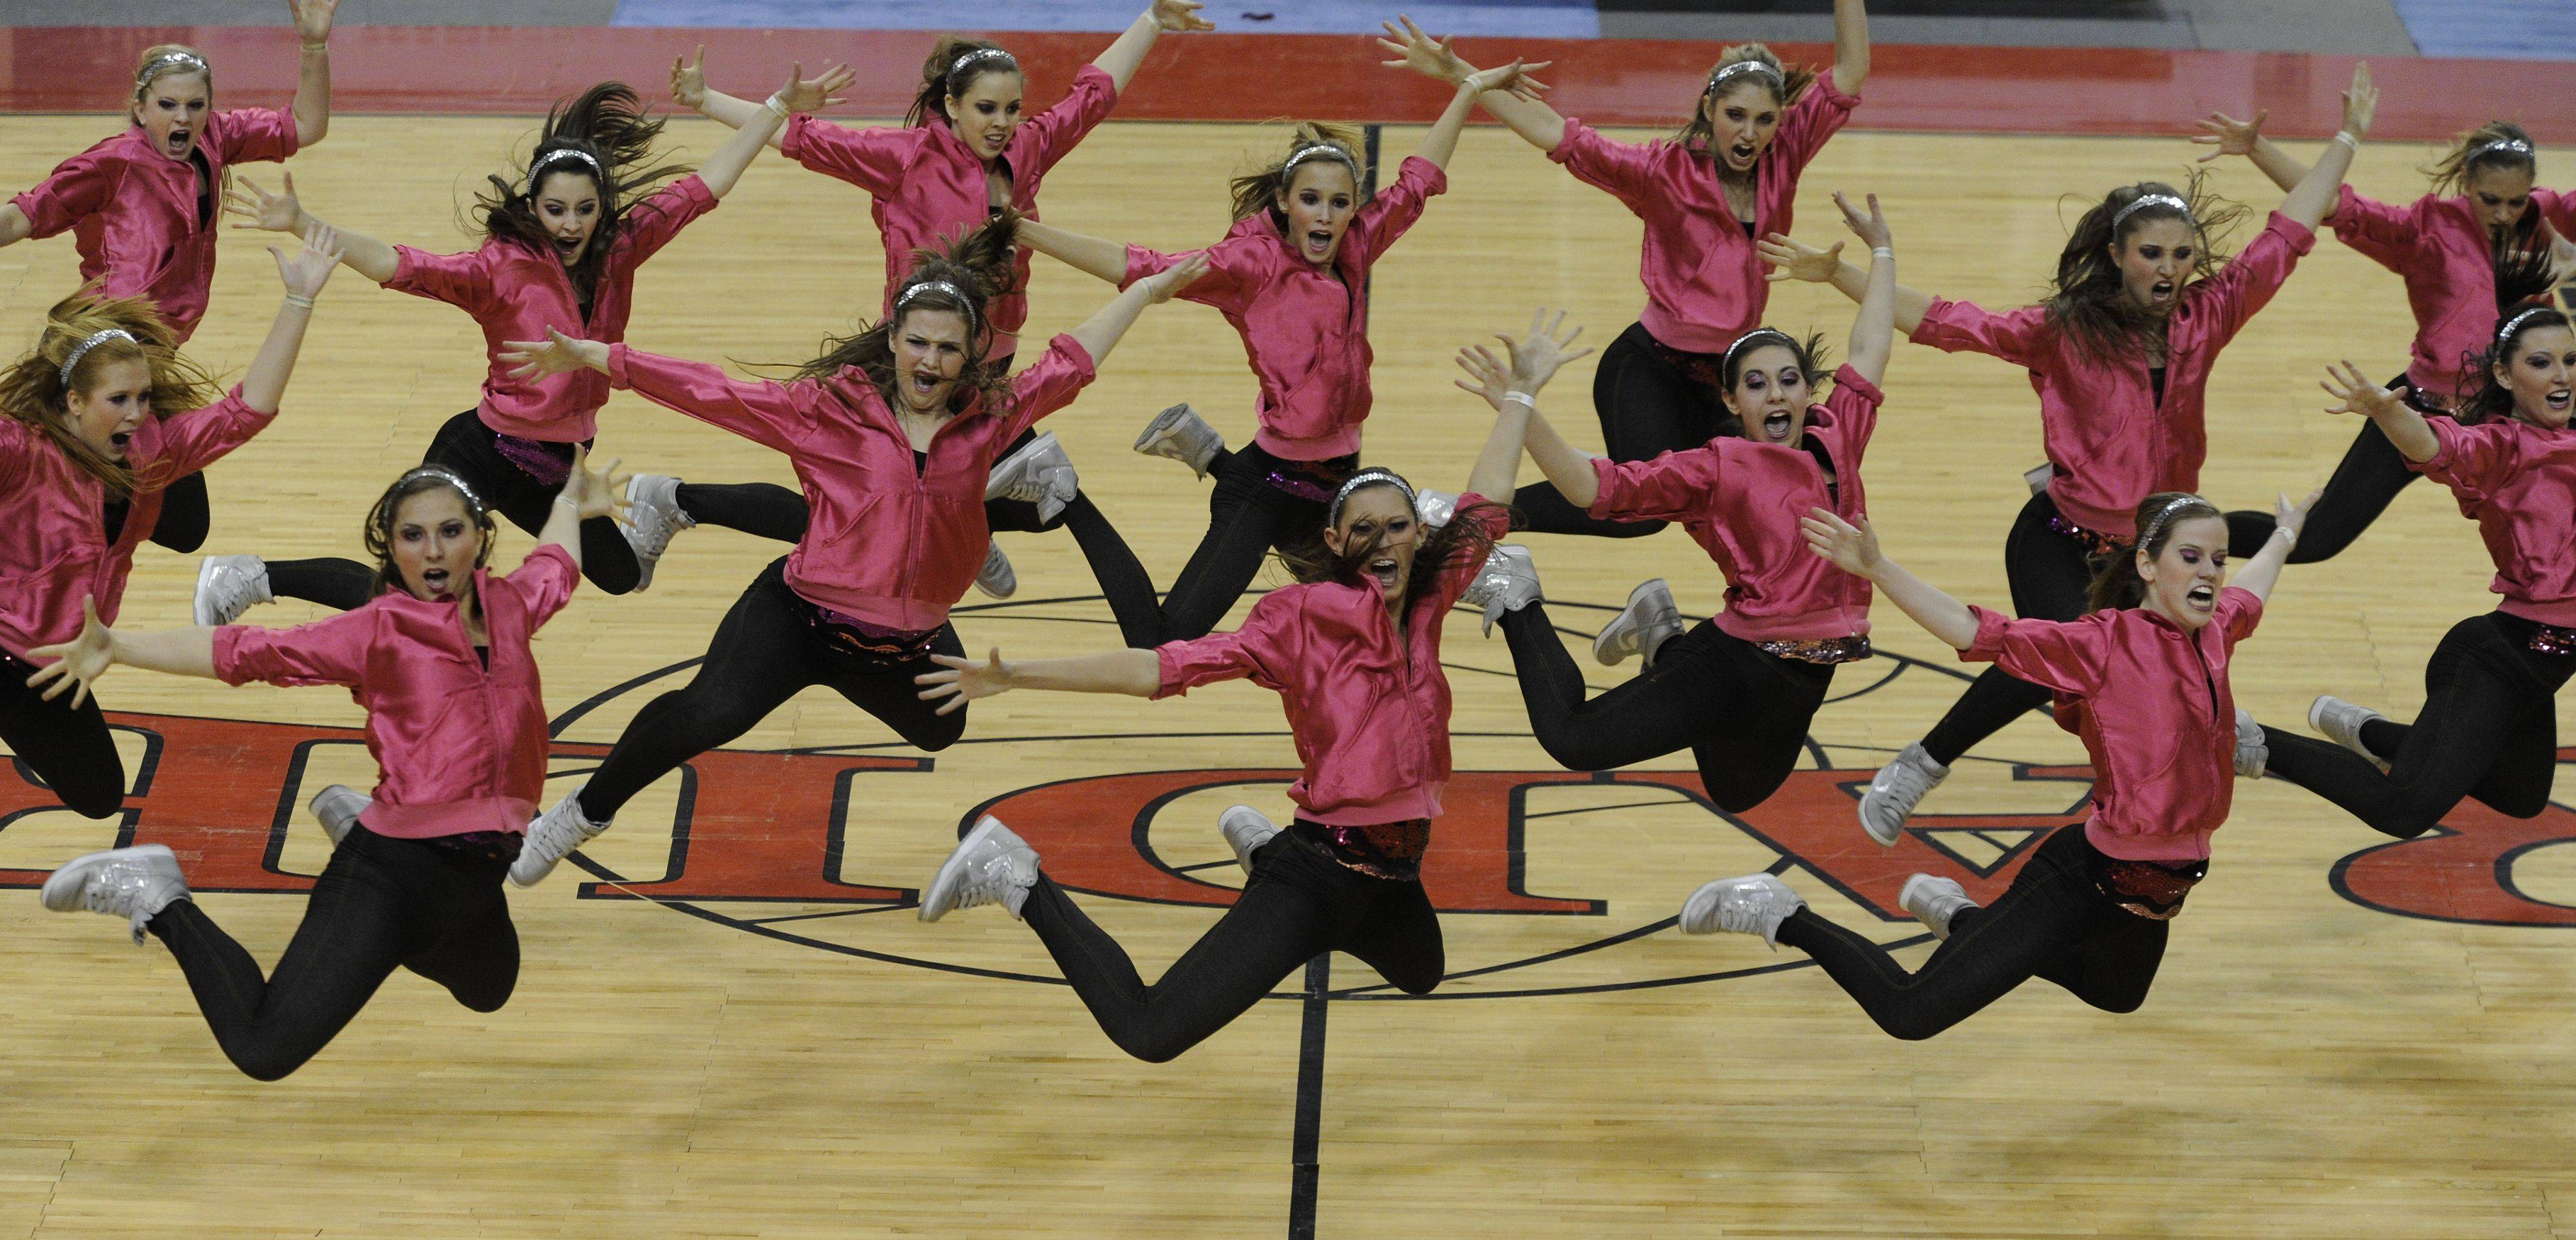 Images from the 5th annual Team Dance Illinois Championship Competition in Peoria on Sunday March 6, 2011.